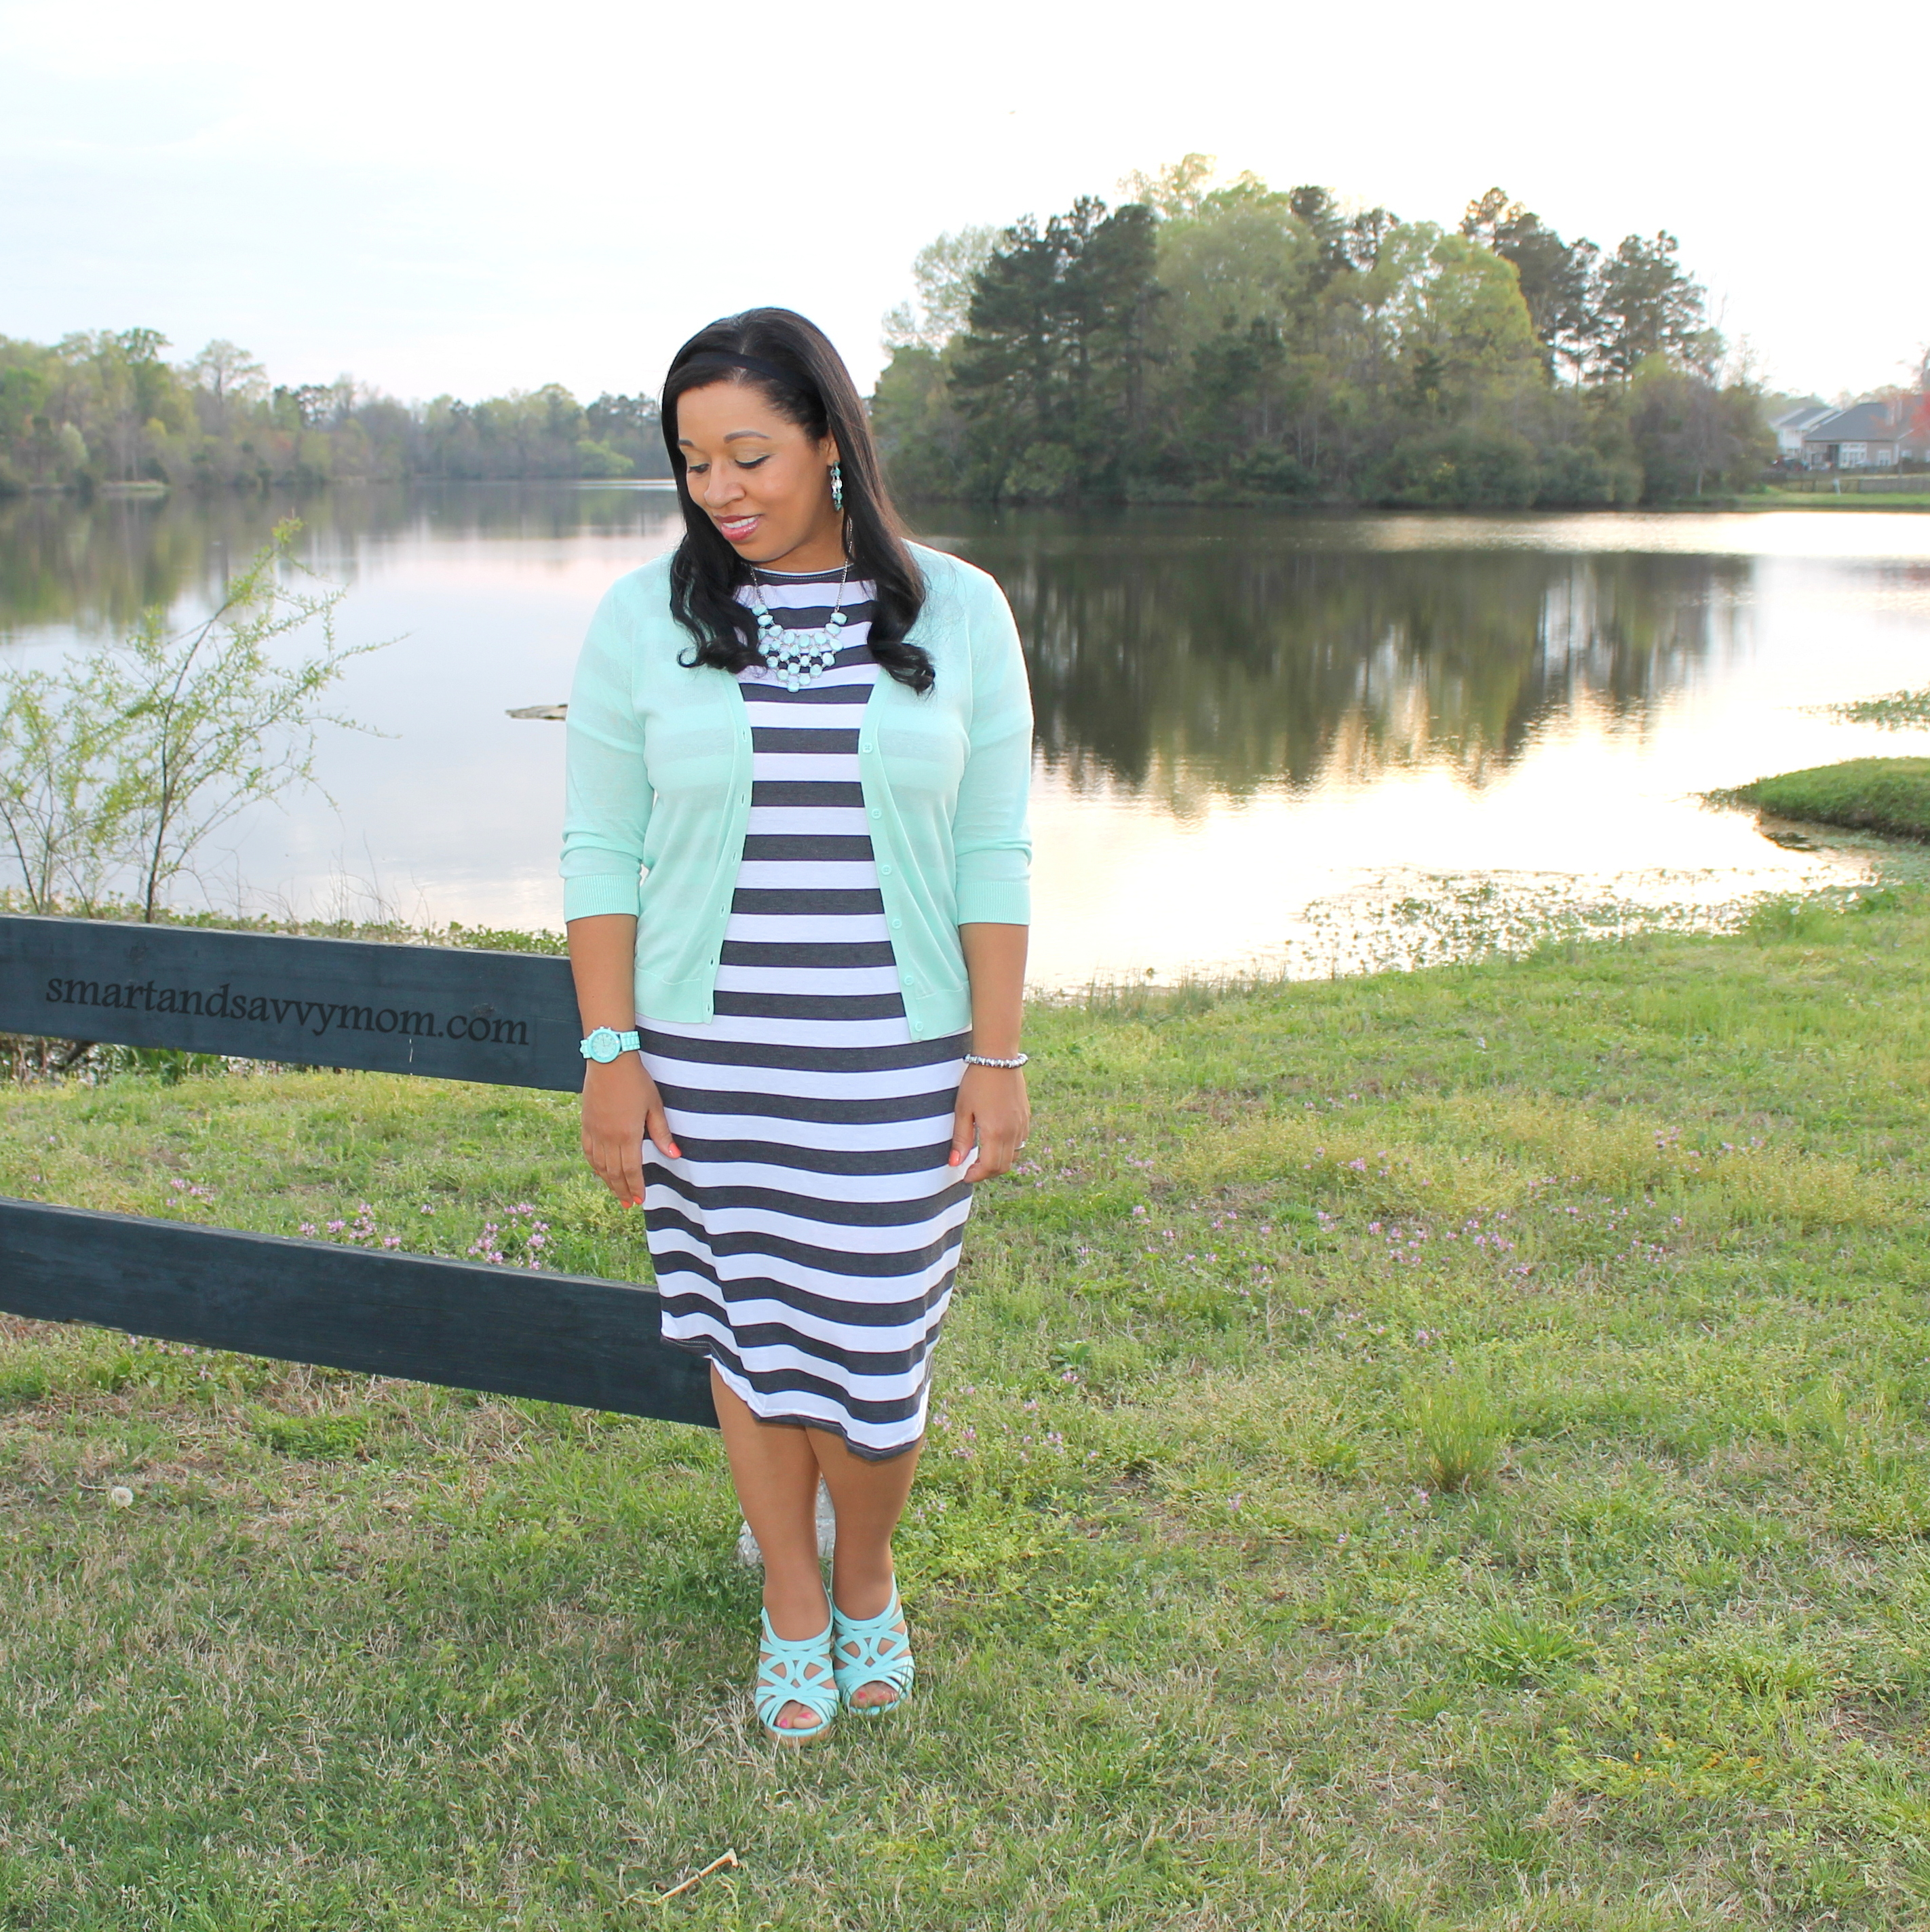 black and white striped tee shirt dress with mint cardigan sweater, teacher outfit idea